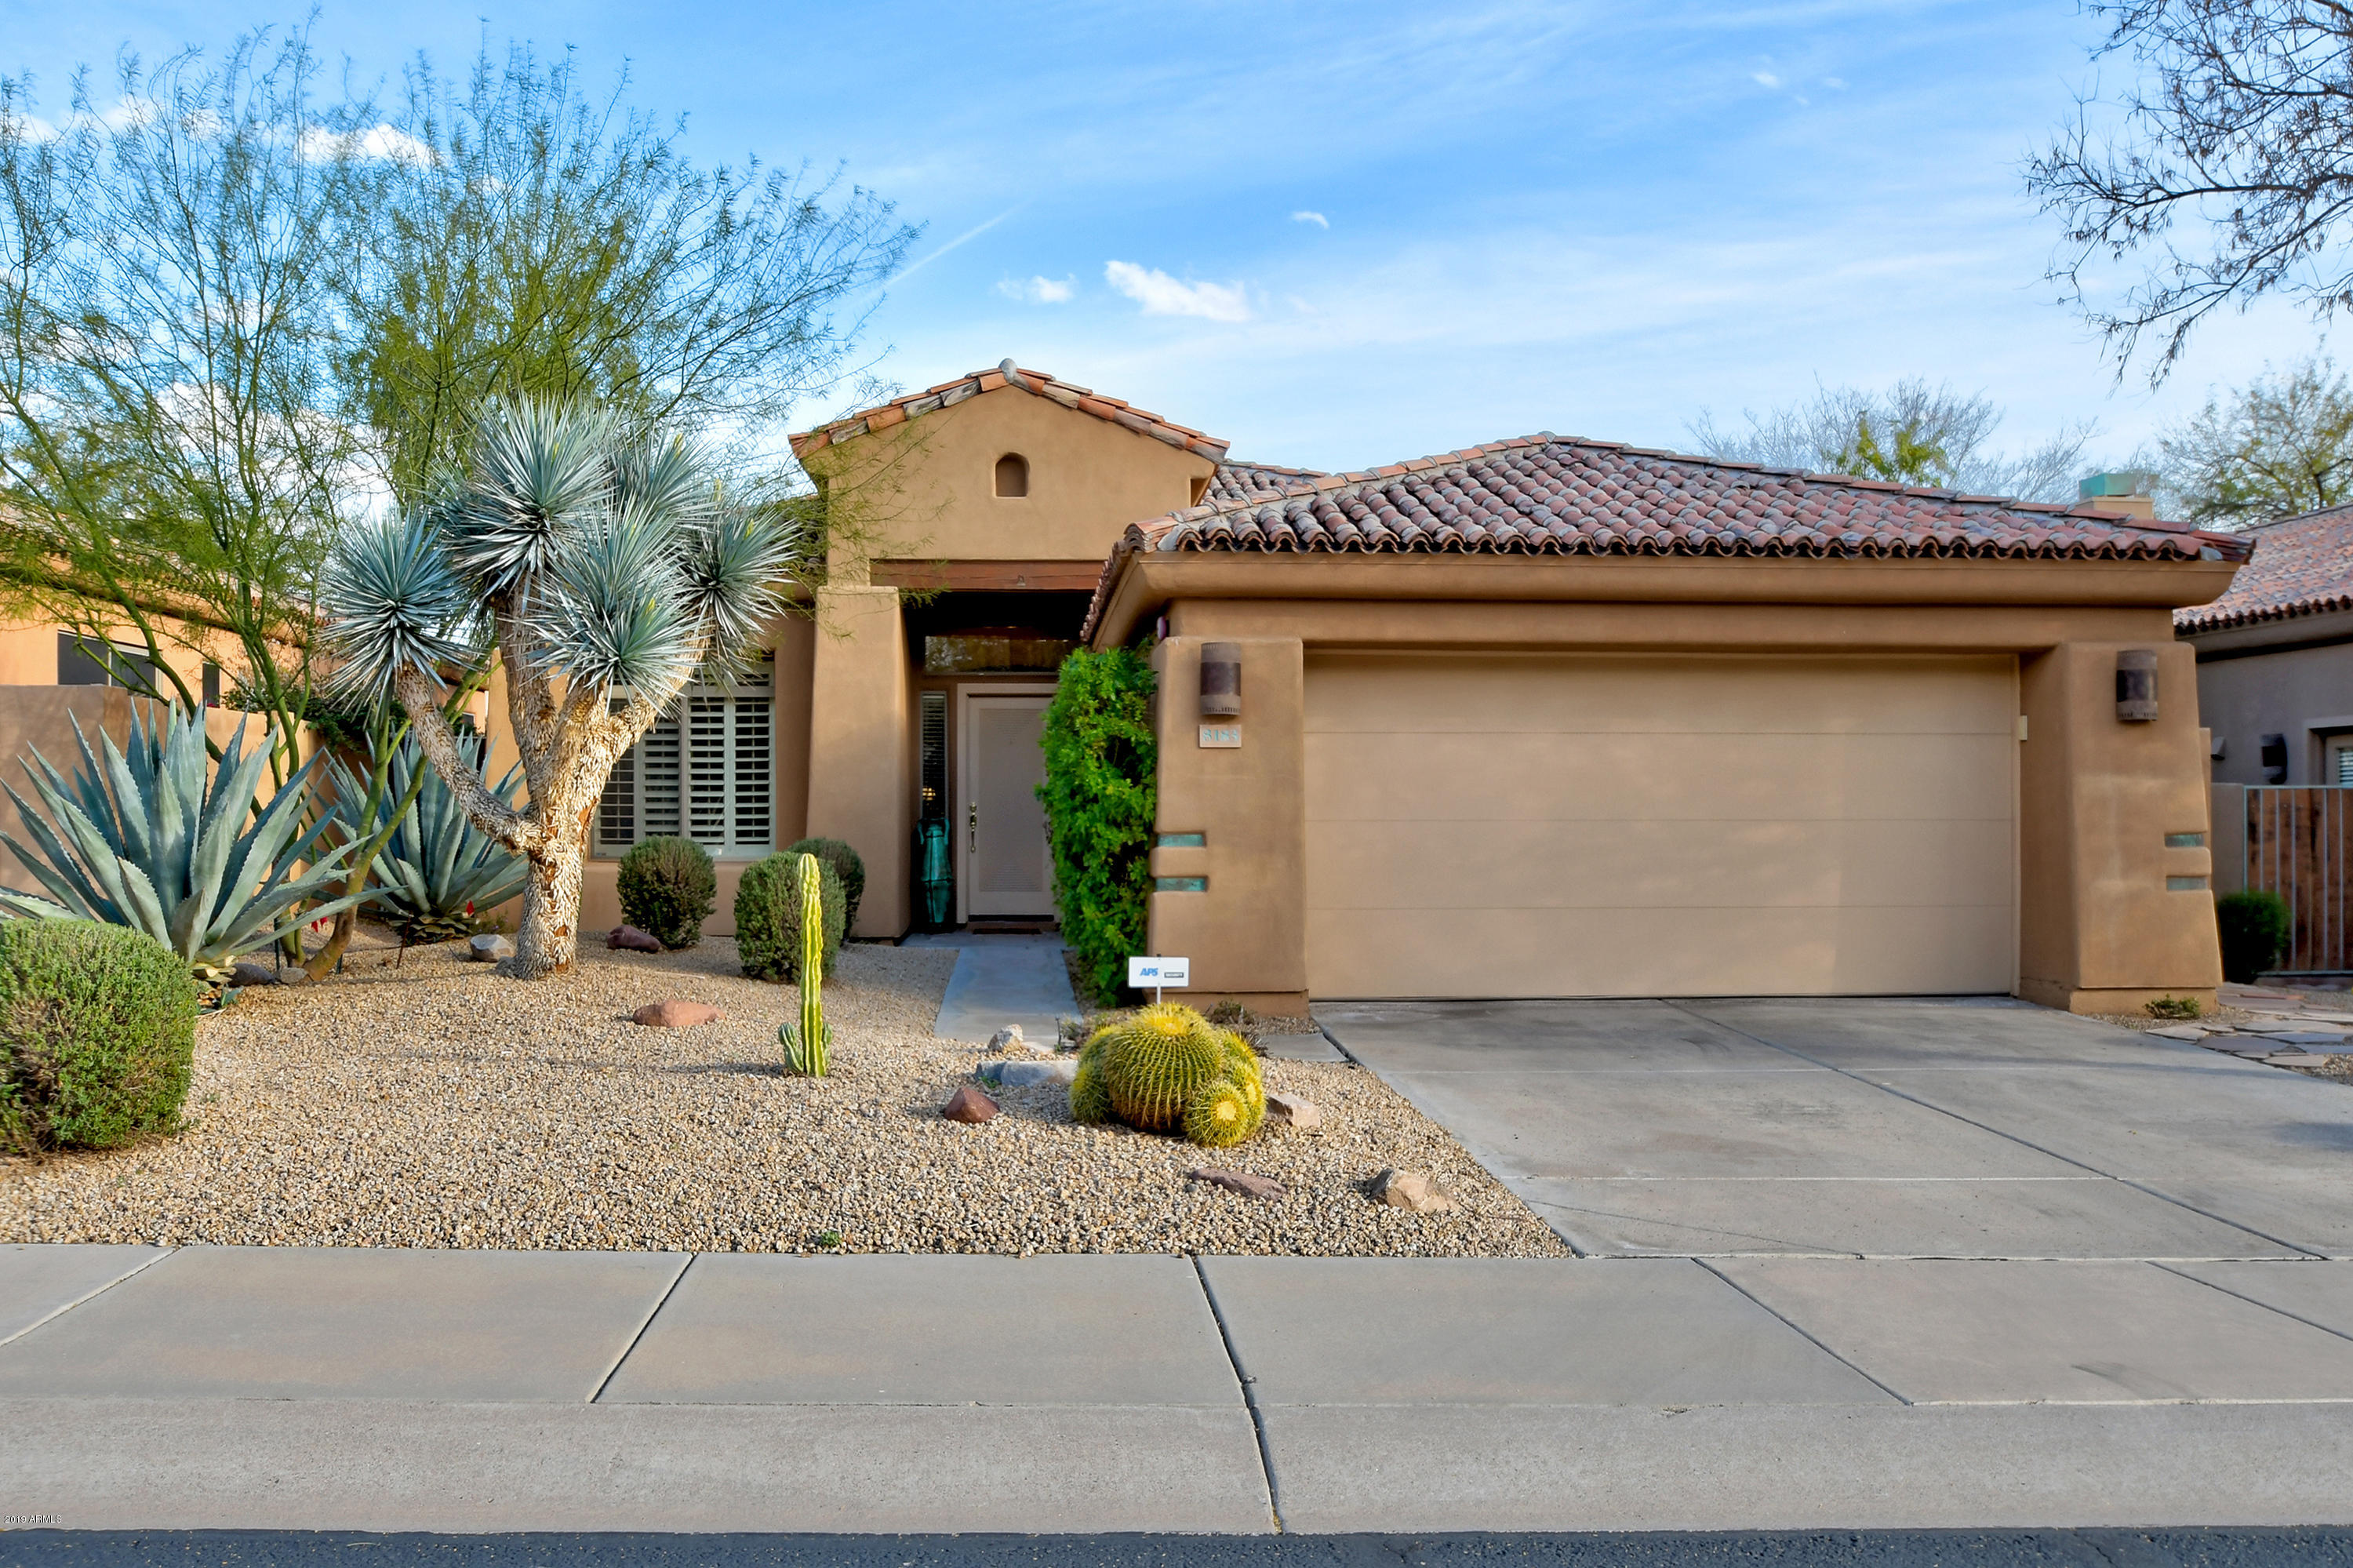 Photo of 8183 E MOUNTAIN SPRING Road, Scottsdale, AZ 85255